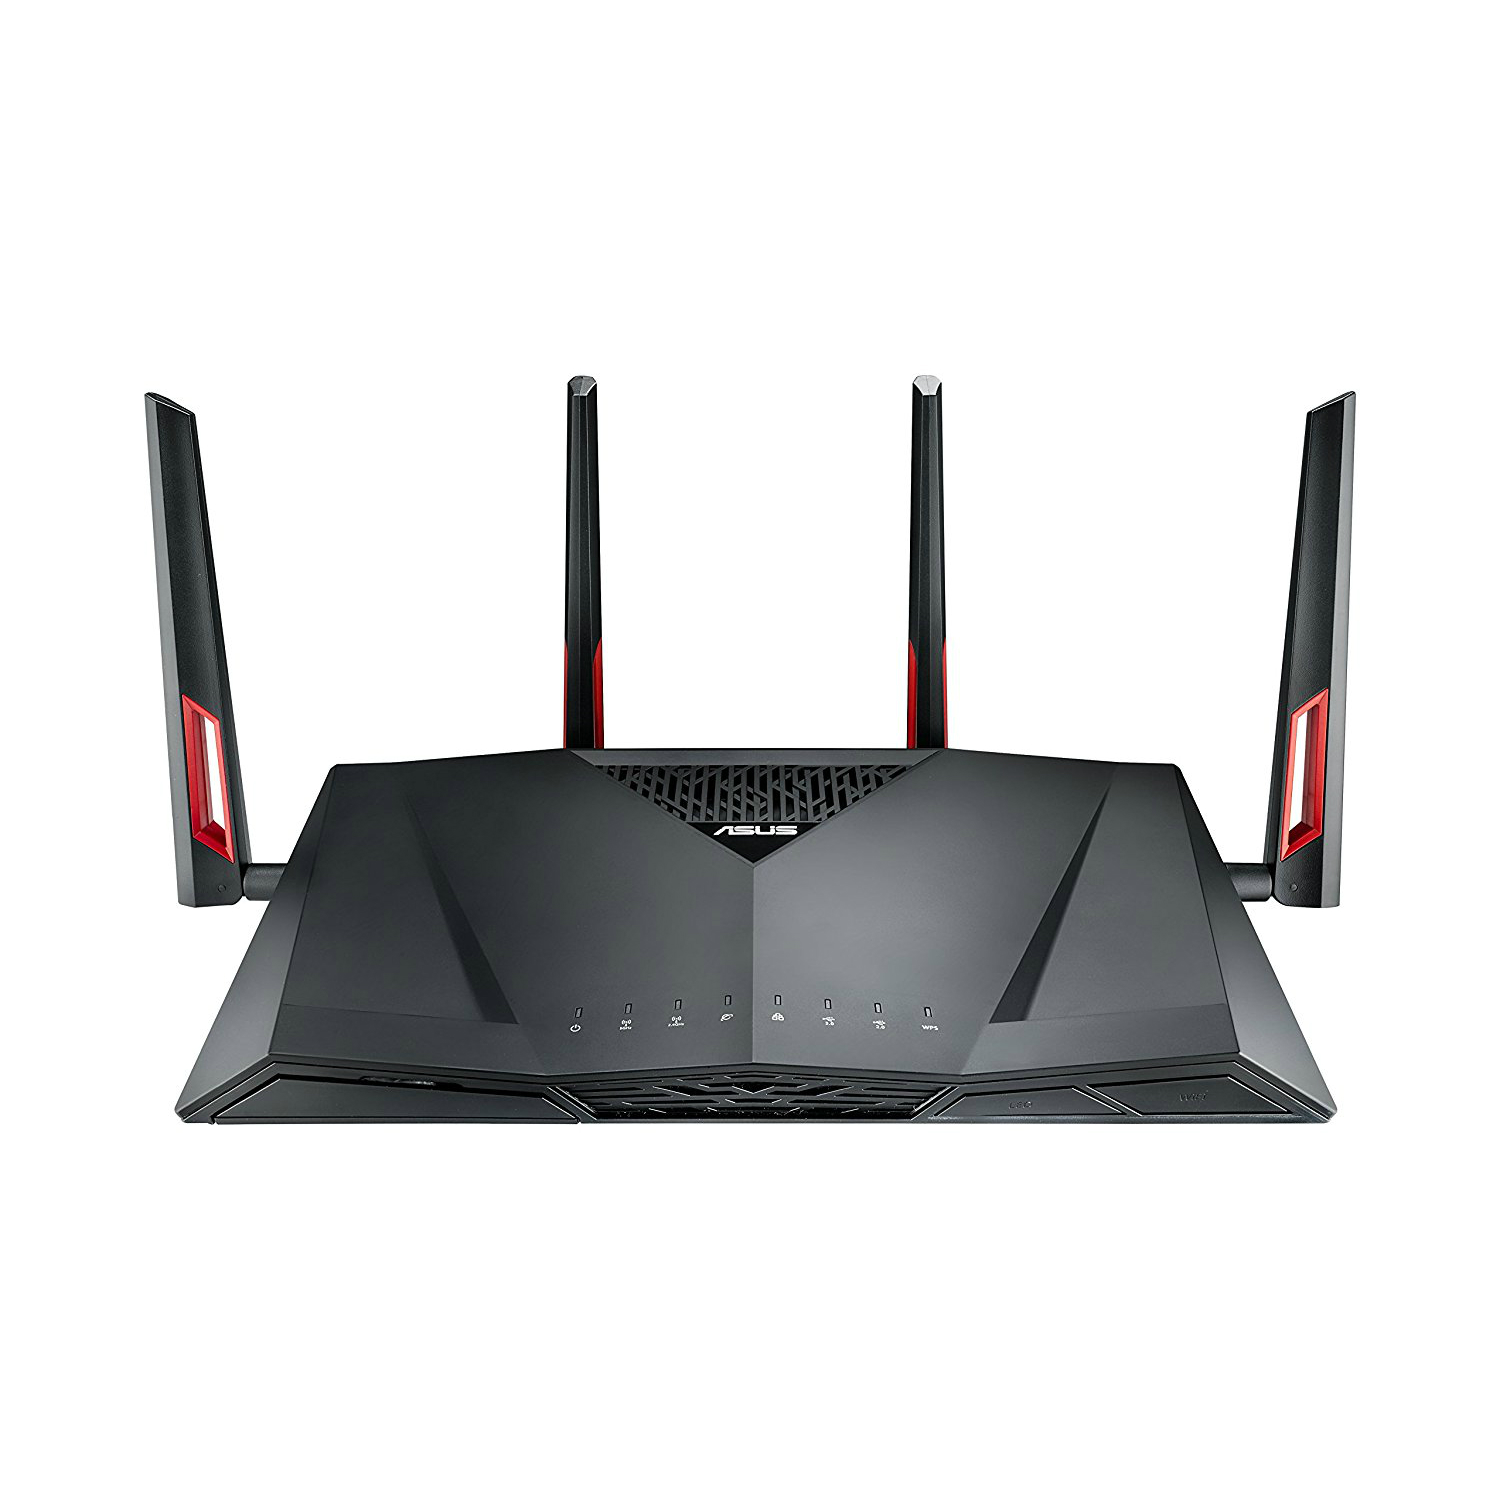 Image of Asus Dual-band Wireless-AC3100 Gigabit Router - RT-AC88U